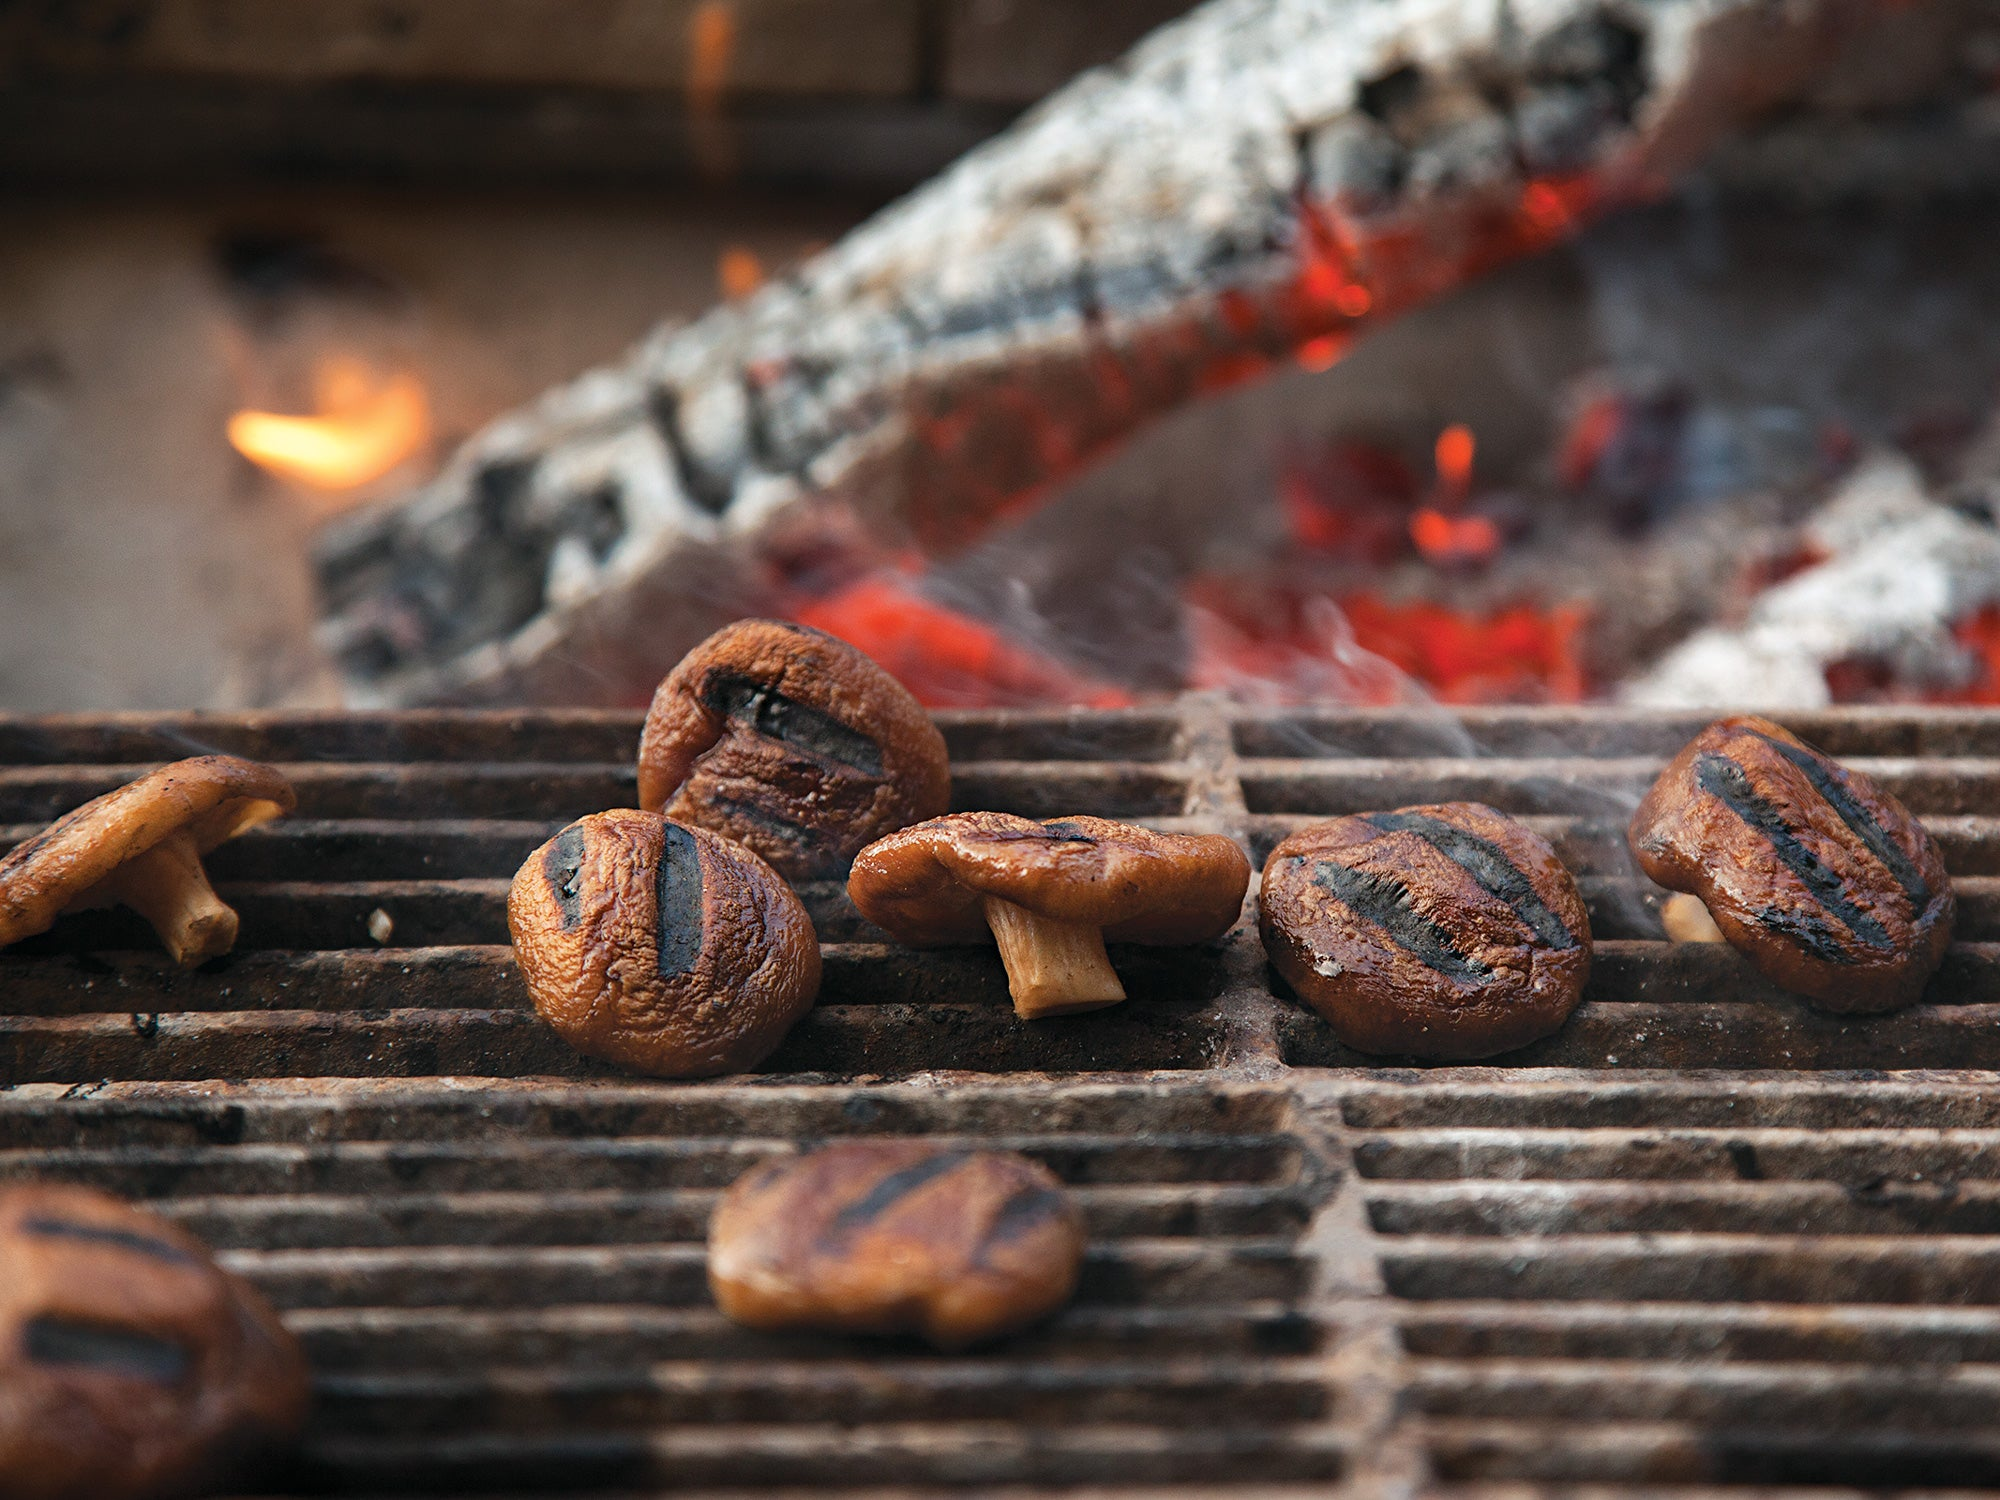 Marinated and Grilled Shiitakes